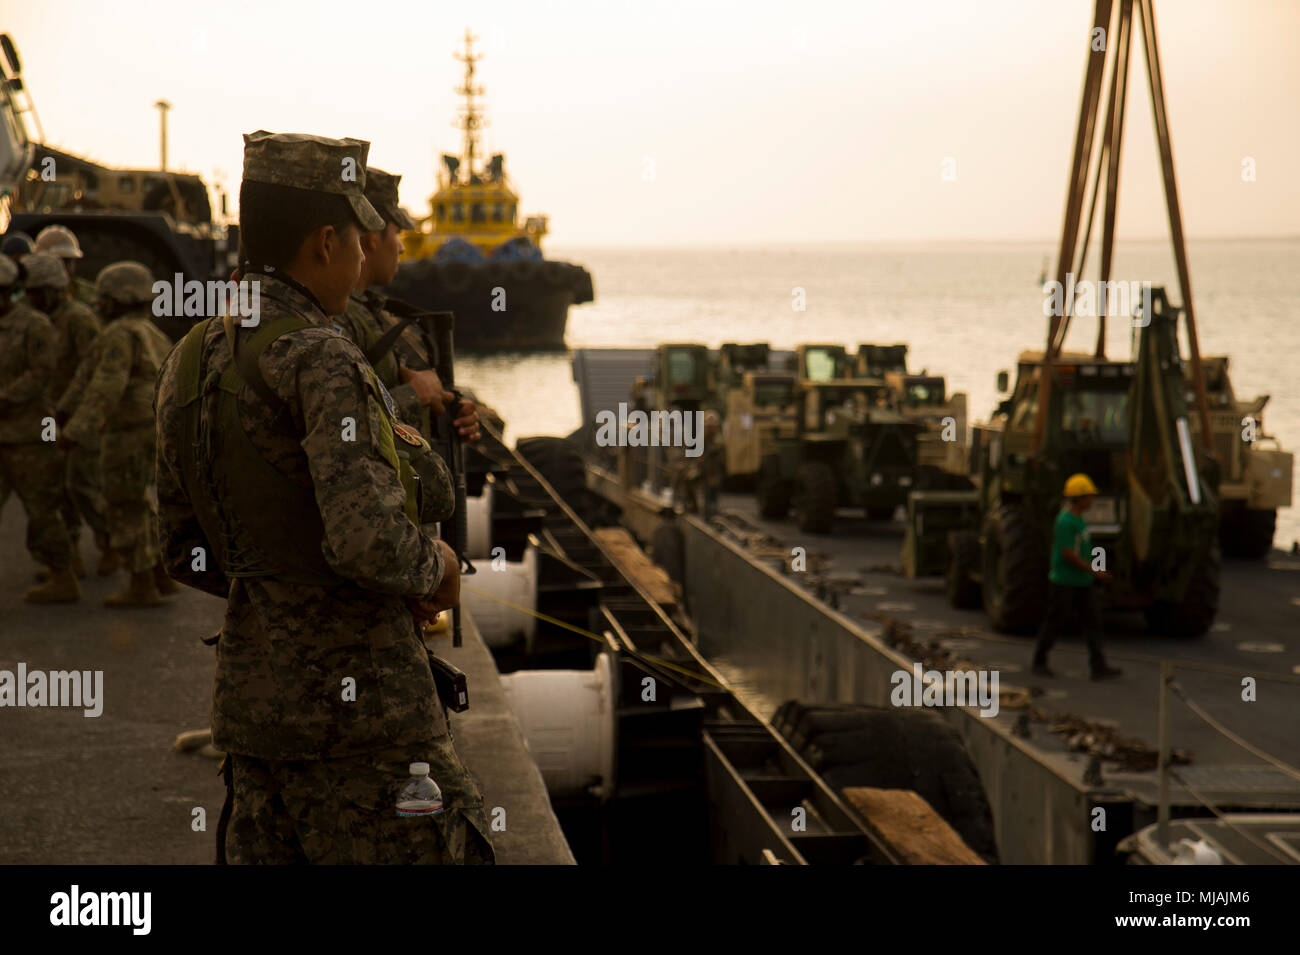 ACAJUTLA, El Salvador (April 22, 2018) Salvadorian marines look on during pier-side Lift On/ Lift Off operations of an Improved Navy Lighterage Causeway Ferry during Joint Logistics Over the Shore (JLOTS) 18. JLOTS 18 is part of U.S. Southern Command's exercise Beyond the Horizon, led by U.S. Army South, that helps to bolster regional and partner relations through humanitarian and civic assistance projects, medical readiness exercises, and exercise related construction projects taking place in El Salvador. (U.S. Navy photo by Mass Communication Specialist 2nd Class Kenneth Gardner/Released) - Stock Image